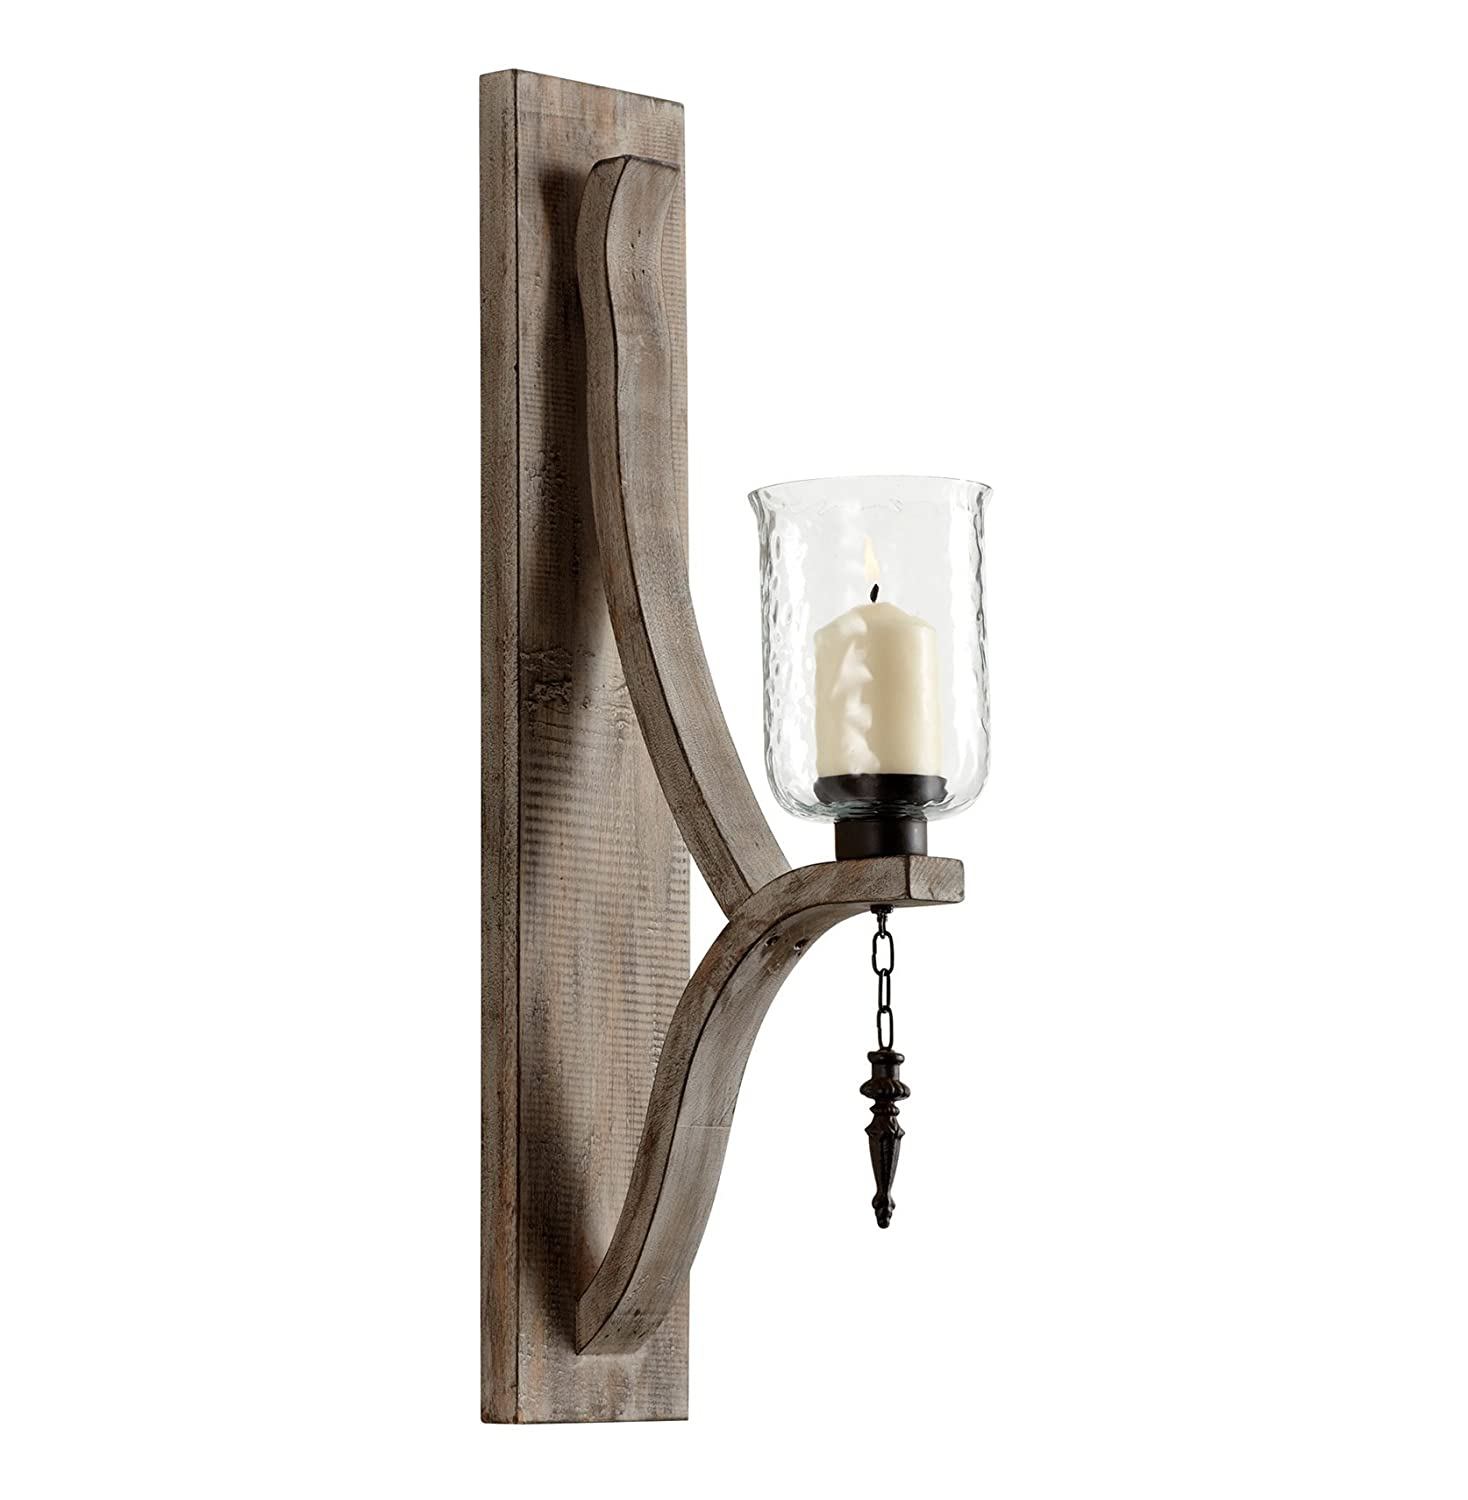 Amazon giorno country rustic chunky wood candle sconce home amazon giorno country rustic chunky wood candle sconce home kitchen amipublicfo Images